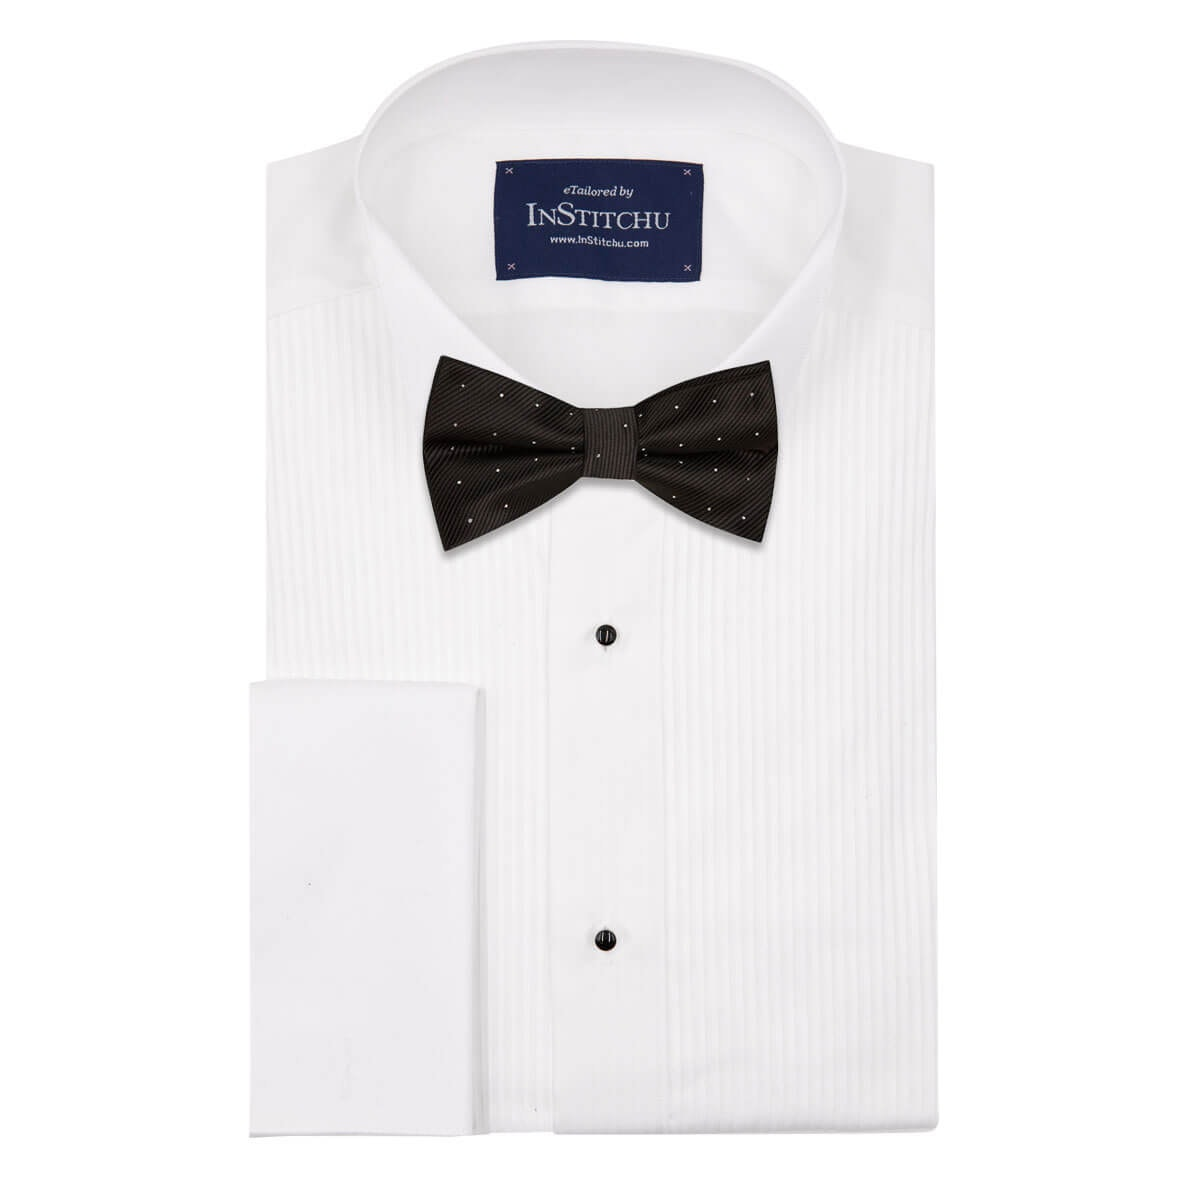 InStitchu Accessories bow-tie The Dahl Black Dots Bow Tie on shirt